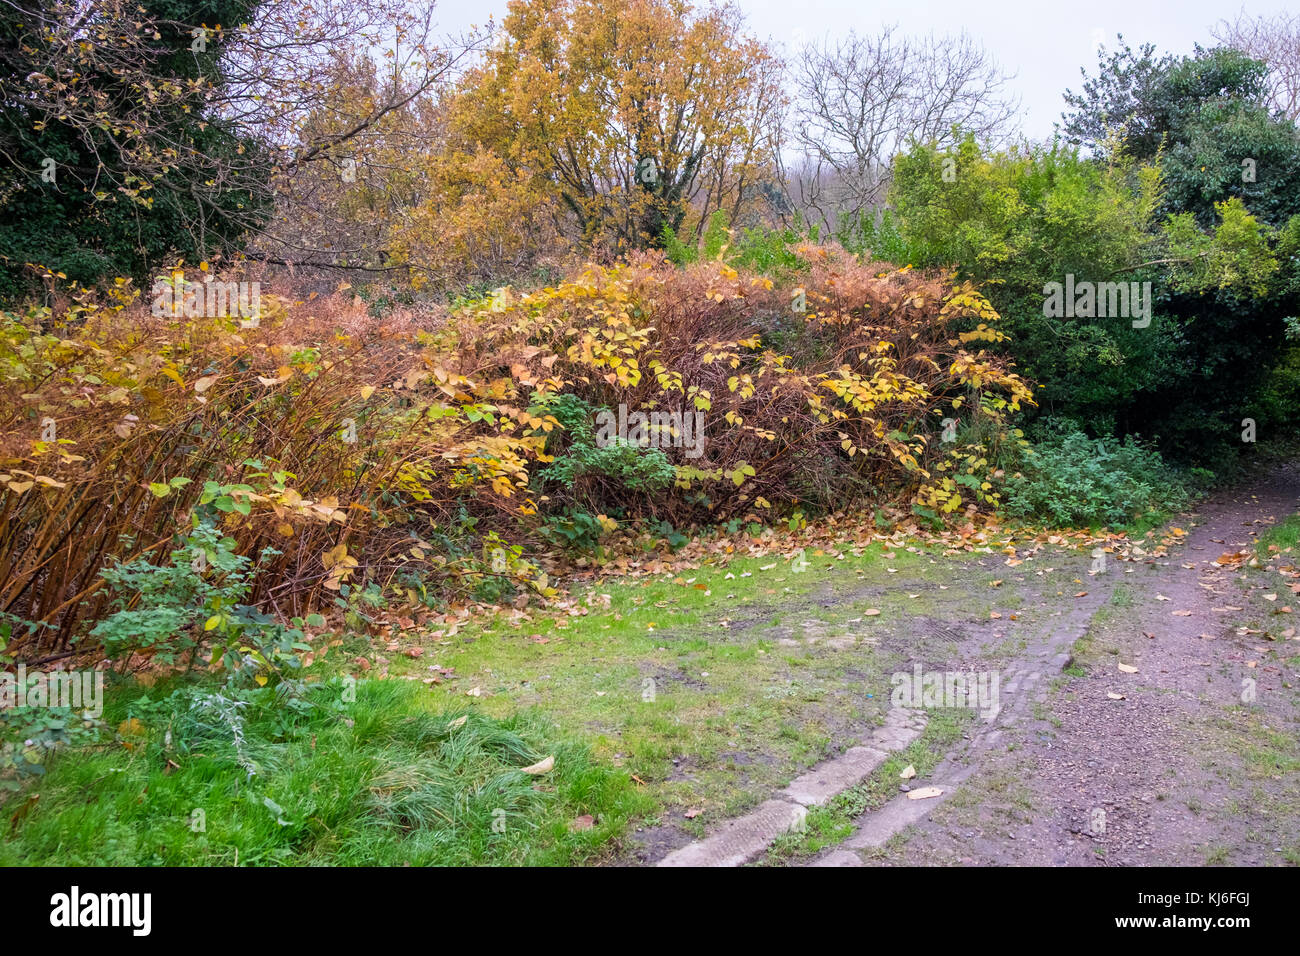 Japanese Knotweed, Fallopia Japonica growing wild, dying down for winter, hastings, uk - Stock Image